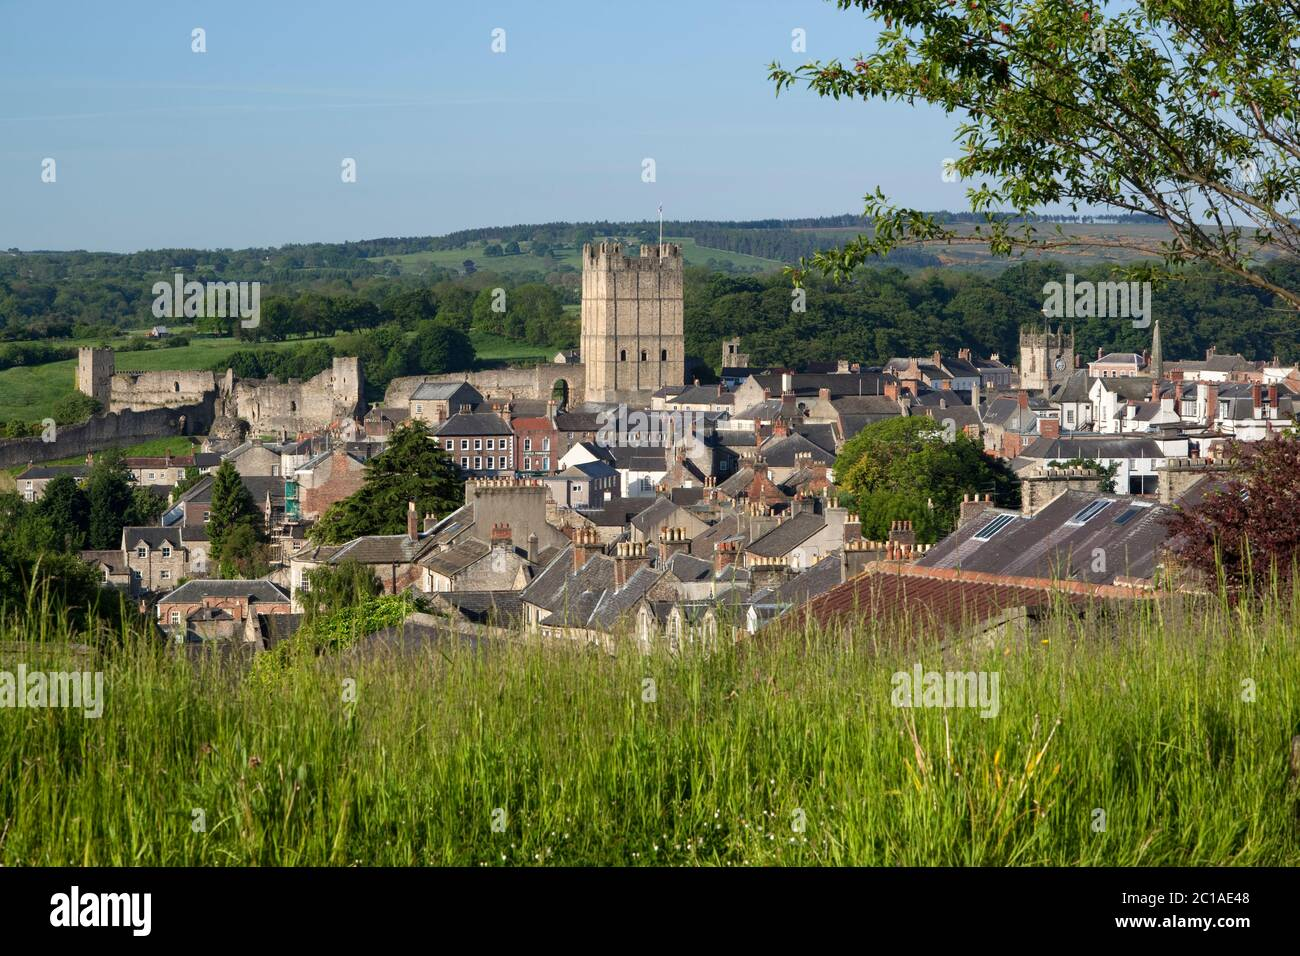 Richmond North Yorkshire High Resolution Stock Photography And Images Alamy